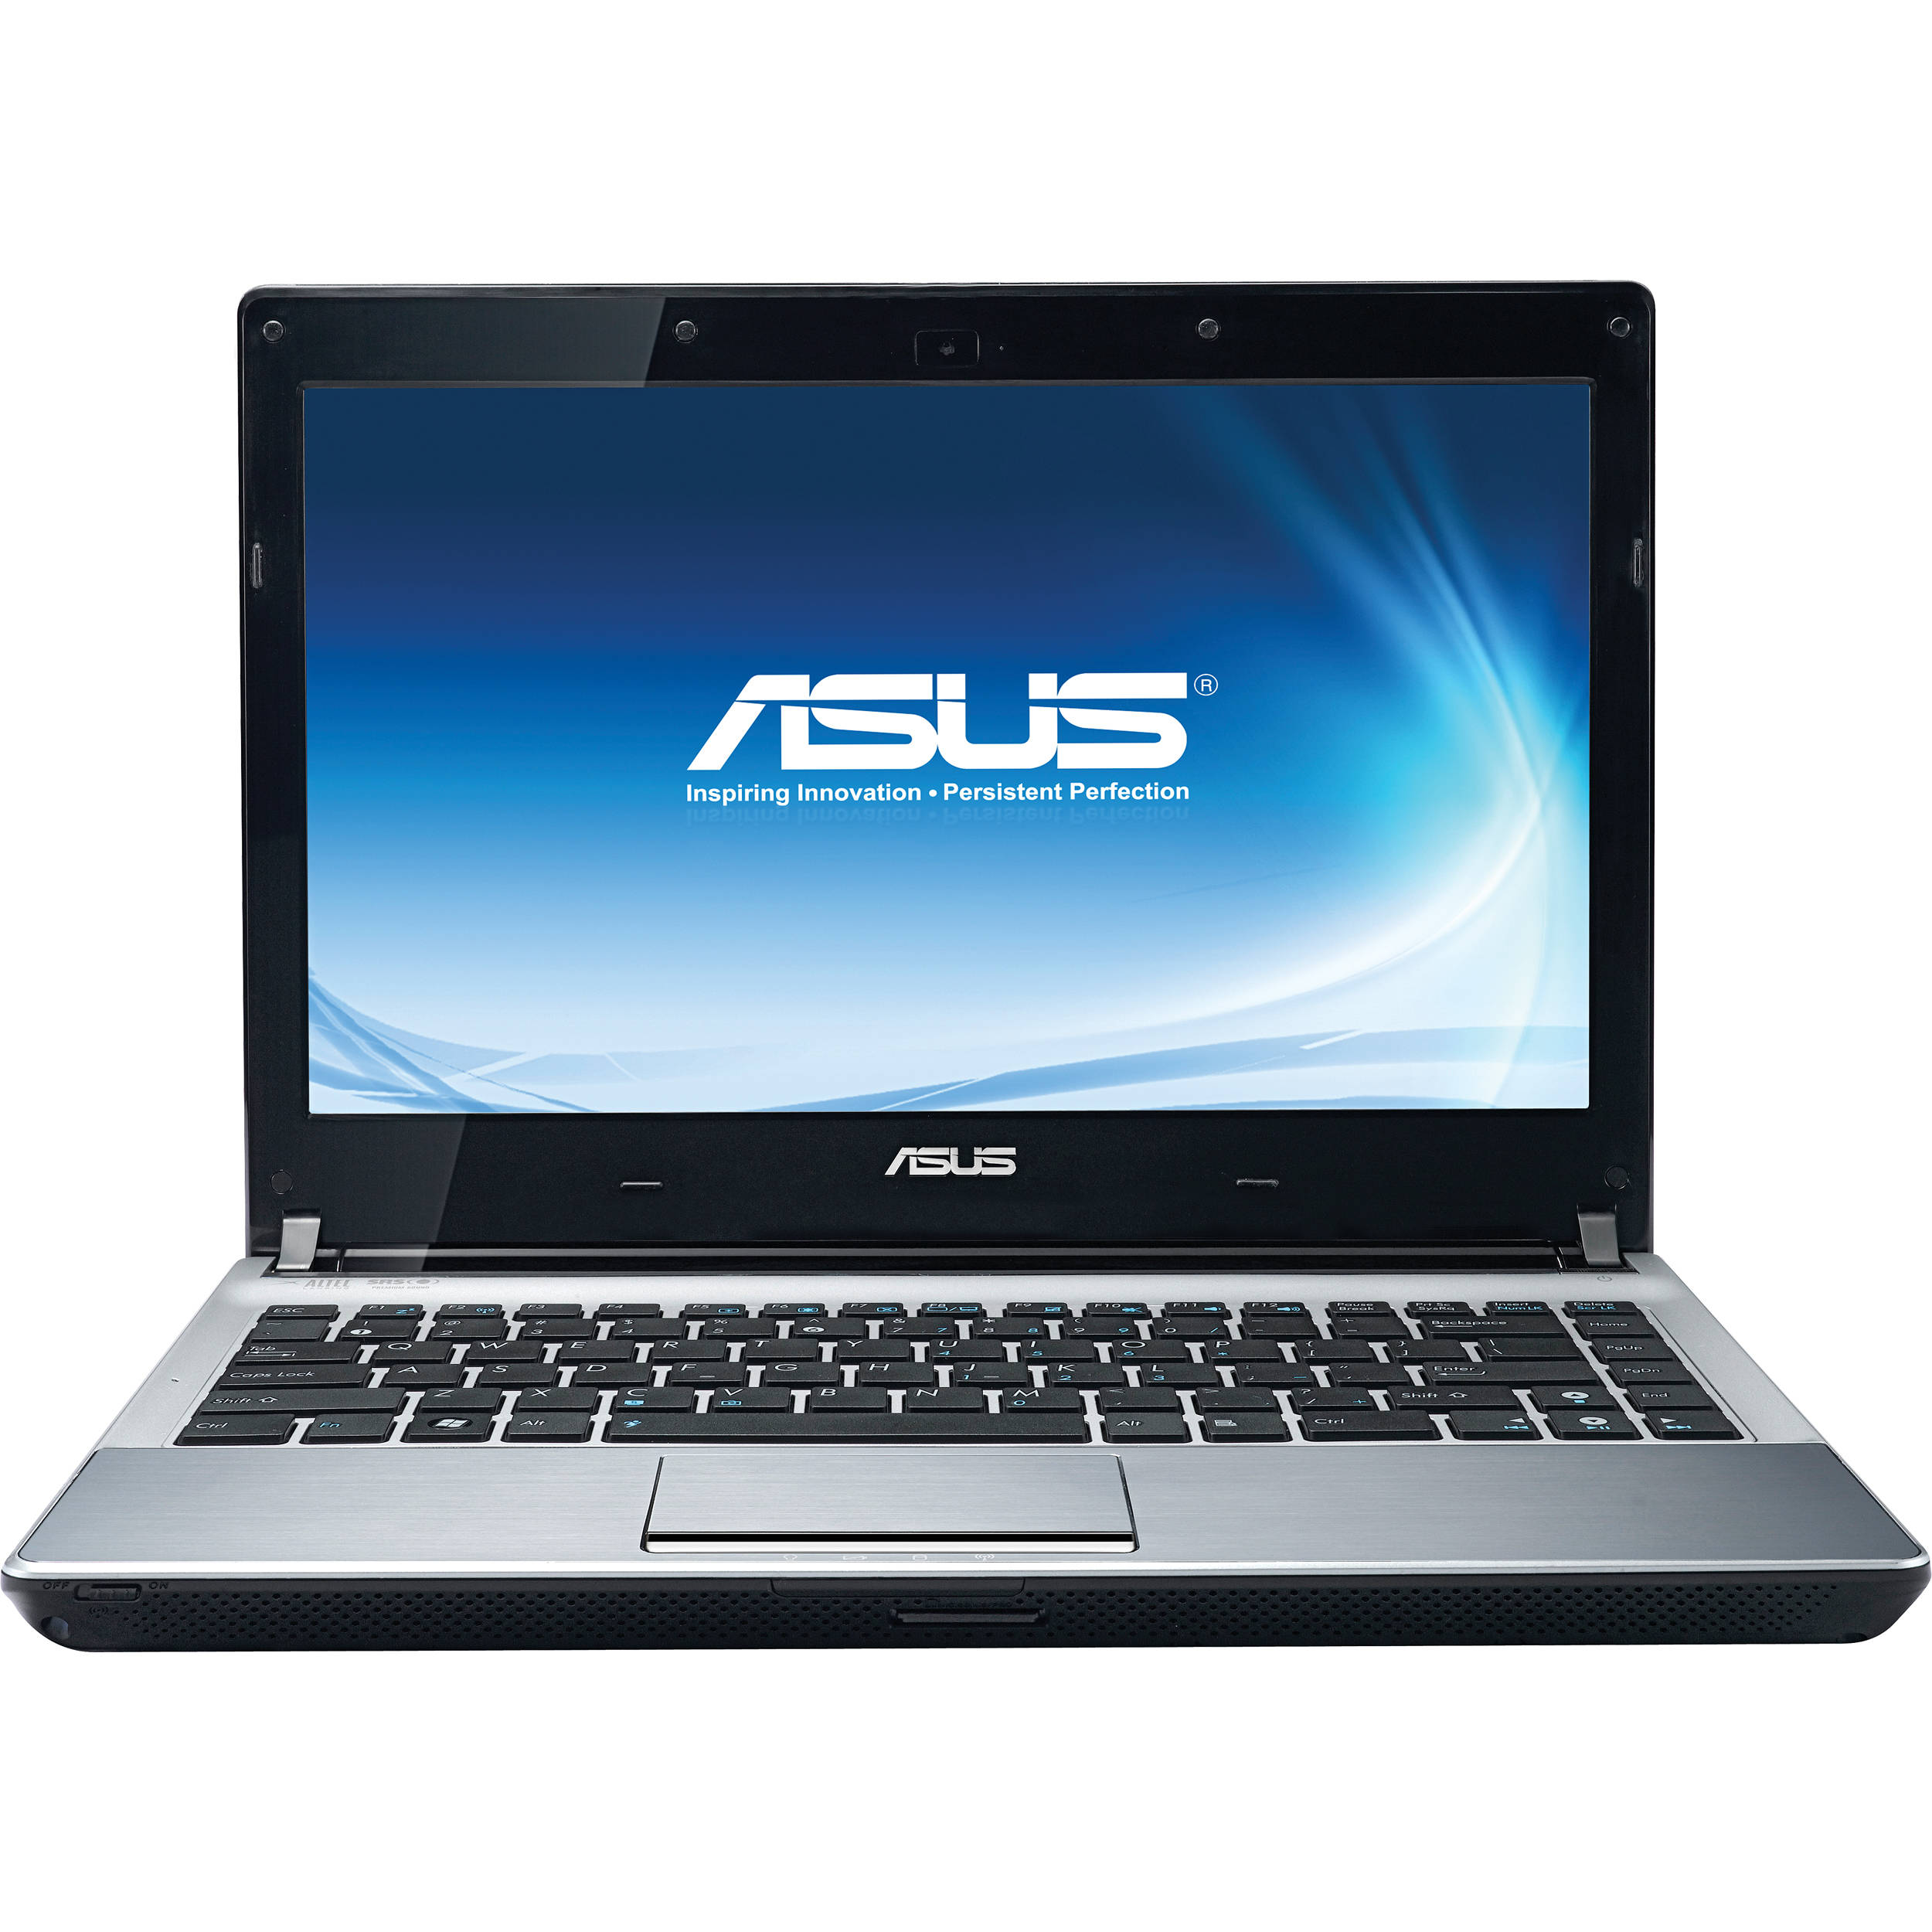 Asus U30JC Notebook Intel 1000 WiFi Driver for Windows 7